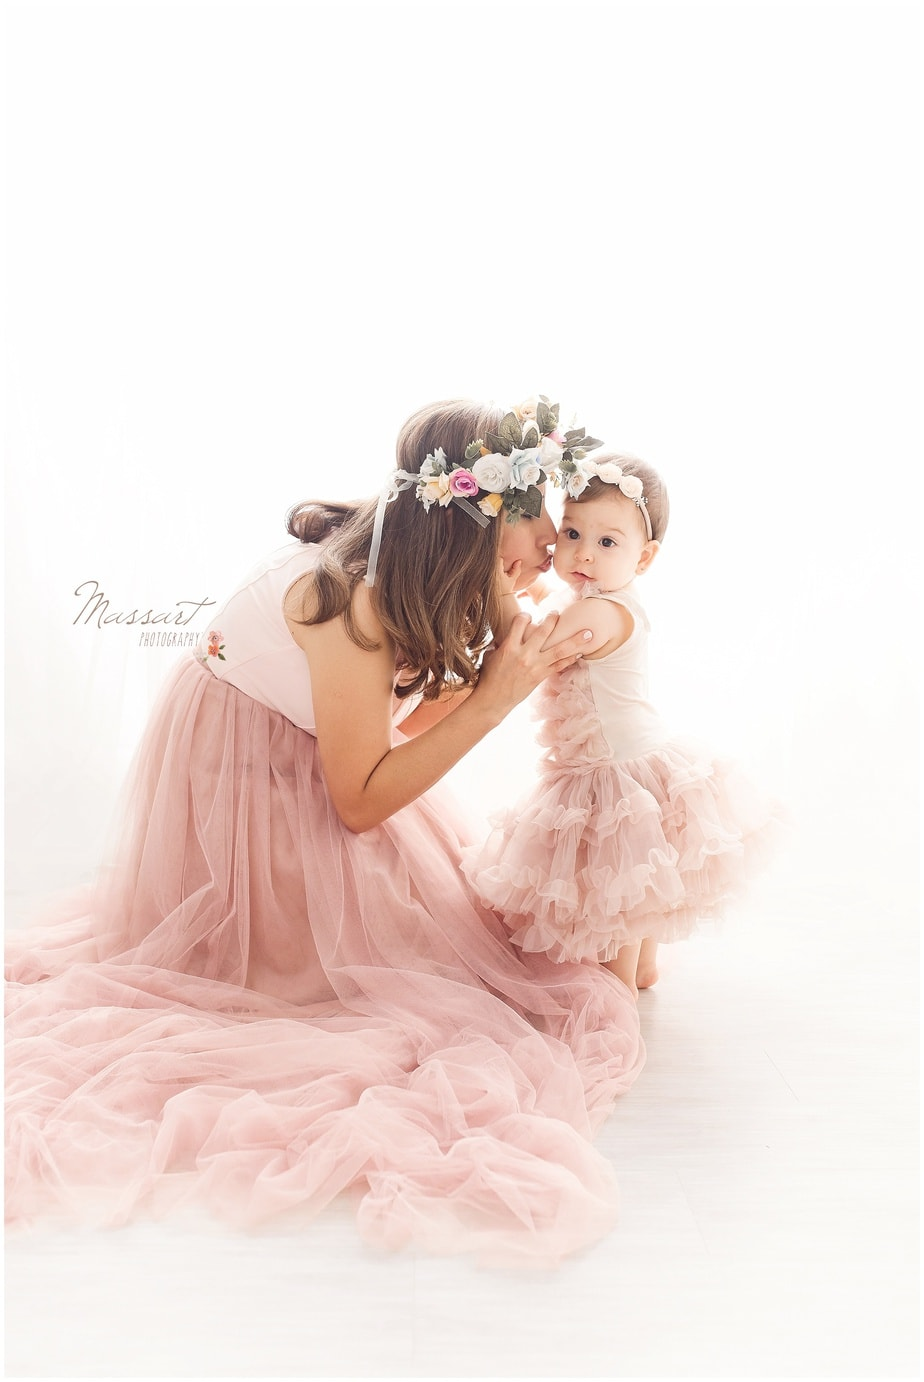 styled photo shoot of mother and daughter photographed by Massart Photography of Rhode island